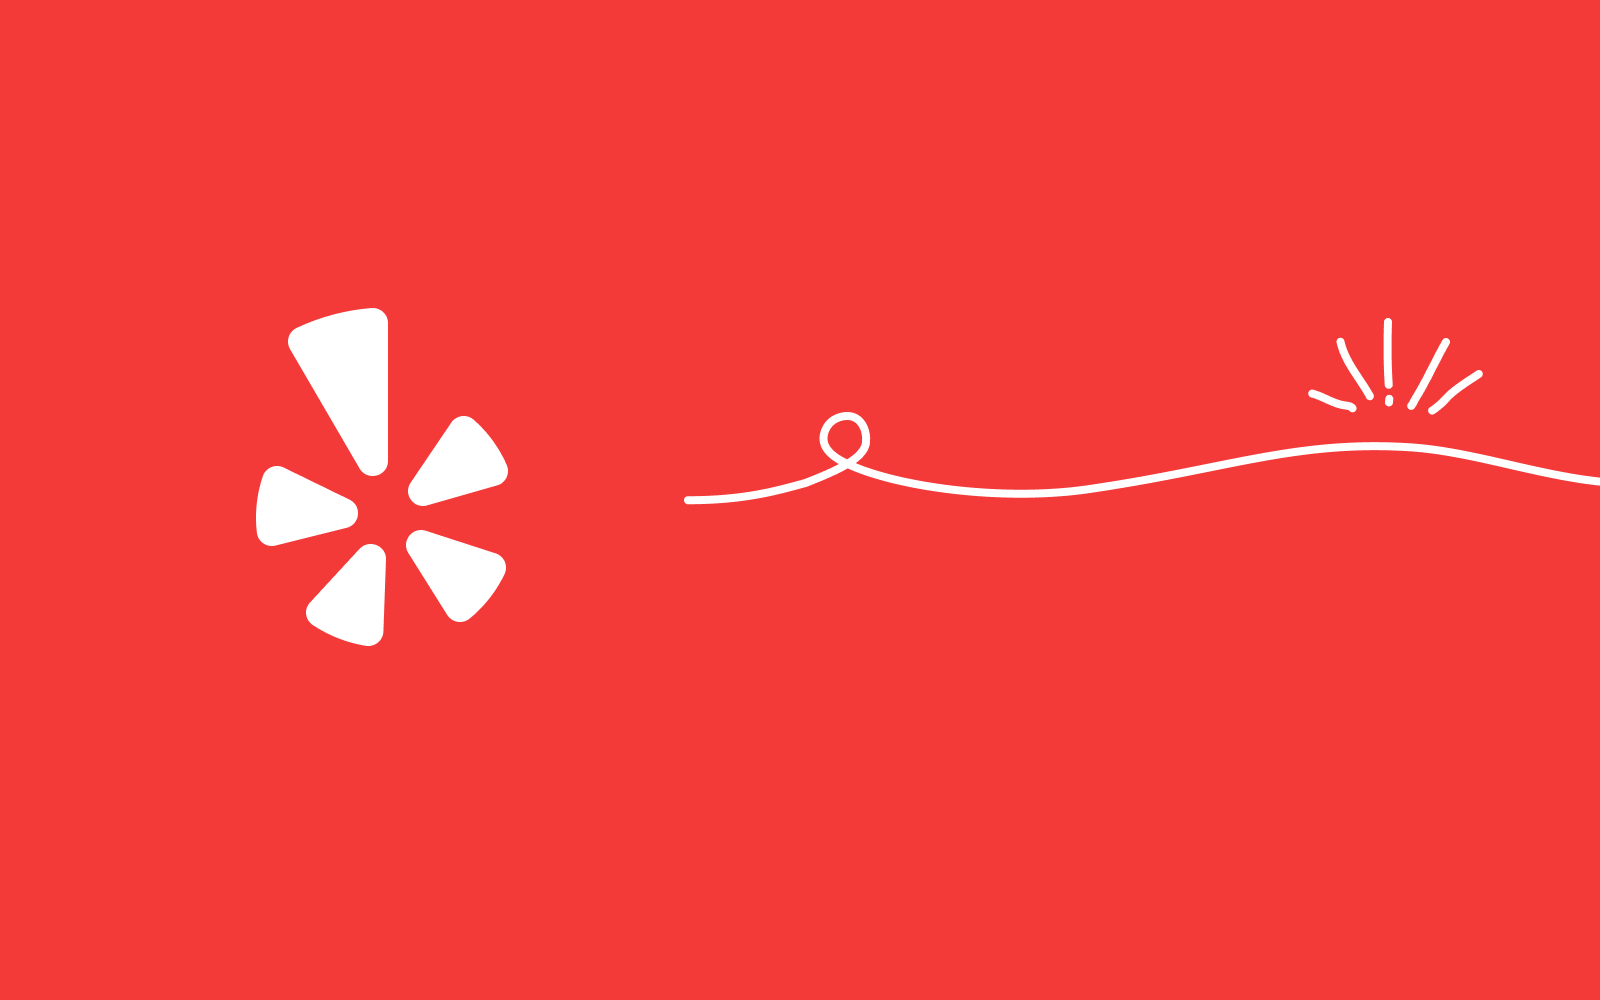 Red background with Yelp's burst logo in white